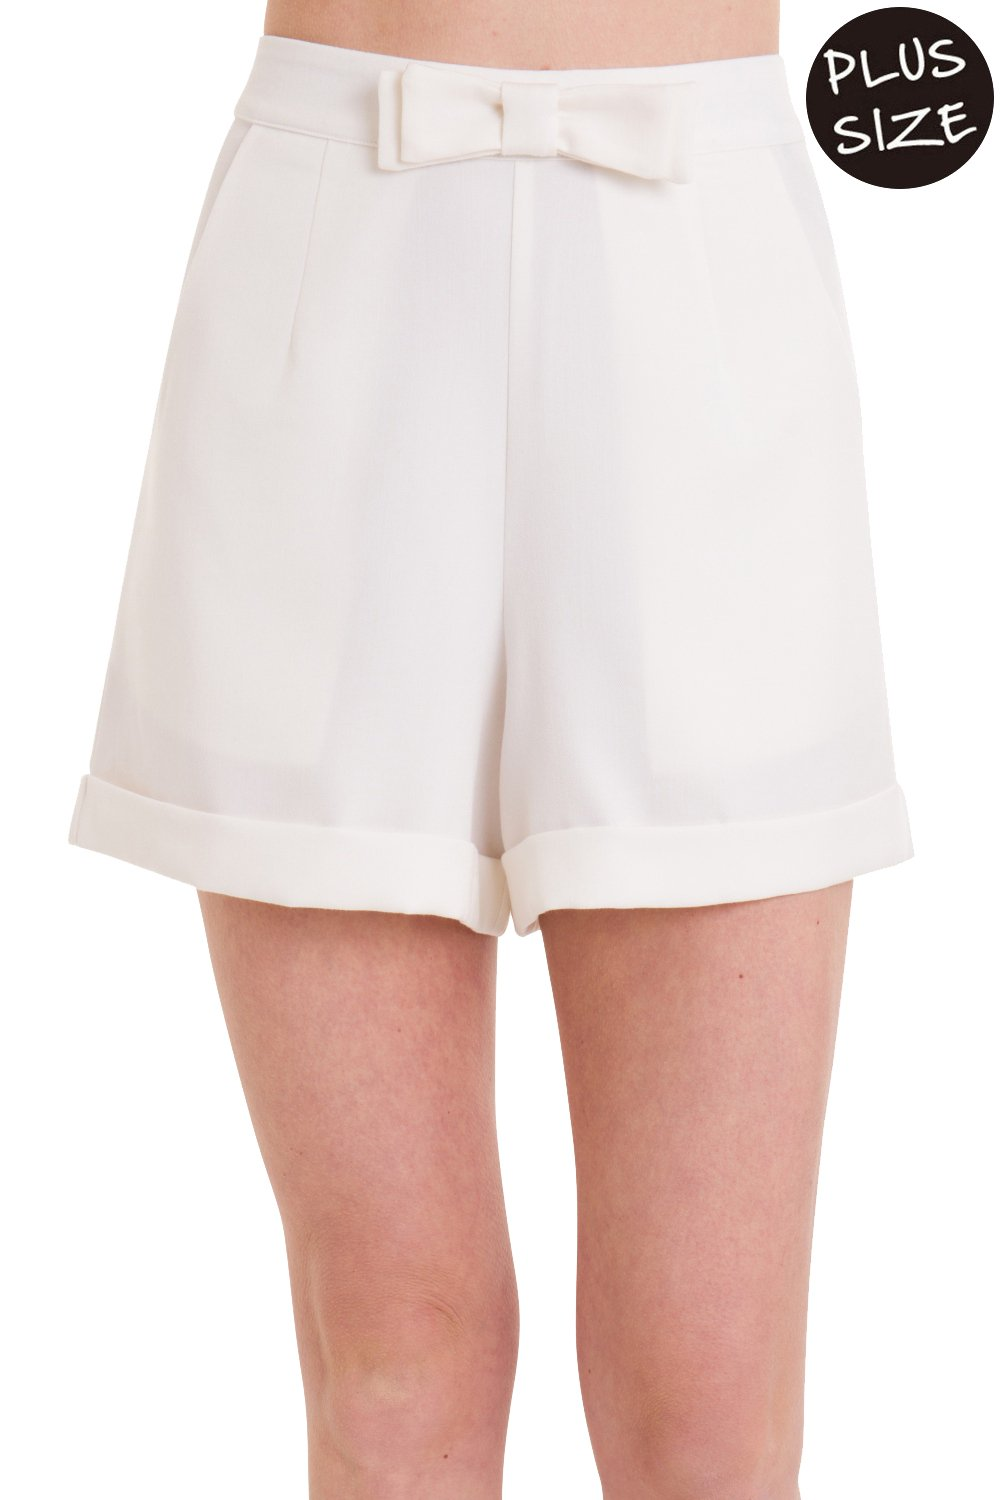 Banned Betsy Plus Size Vintage Style Shorts - Navy White - White/UK-22